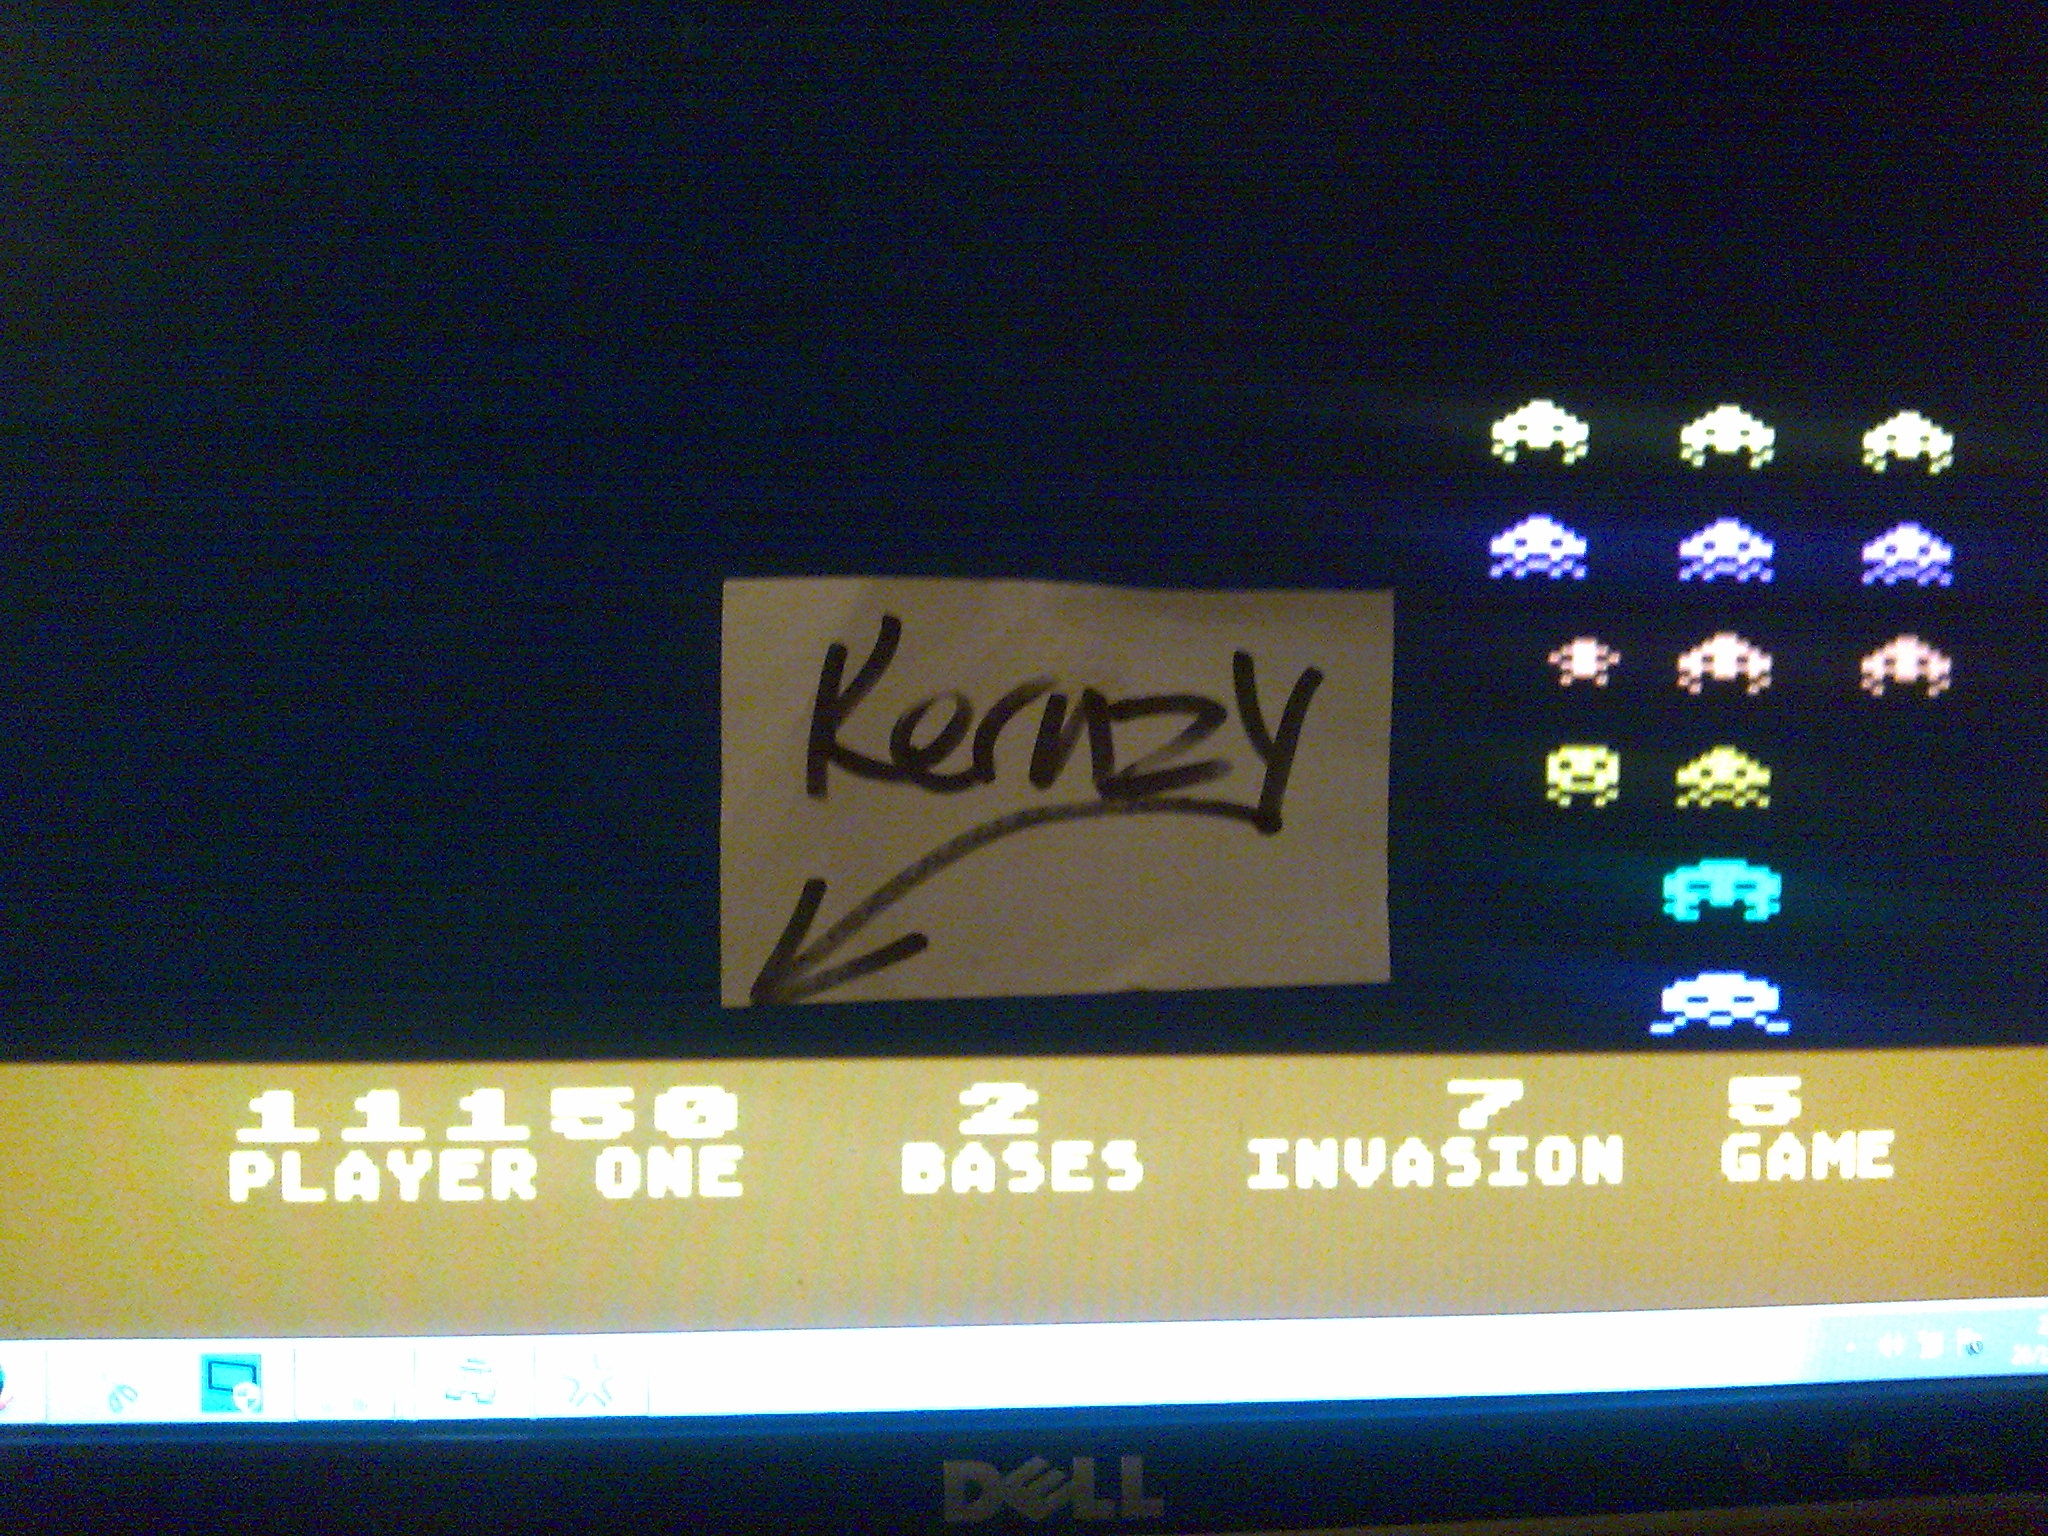 kernzy: Deluxe Invaders: Game 5 (Atari 400/800/XL/XE Emulated) 11,150 points on 2014-10-21 13:00:56